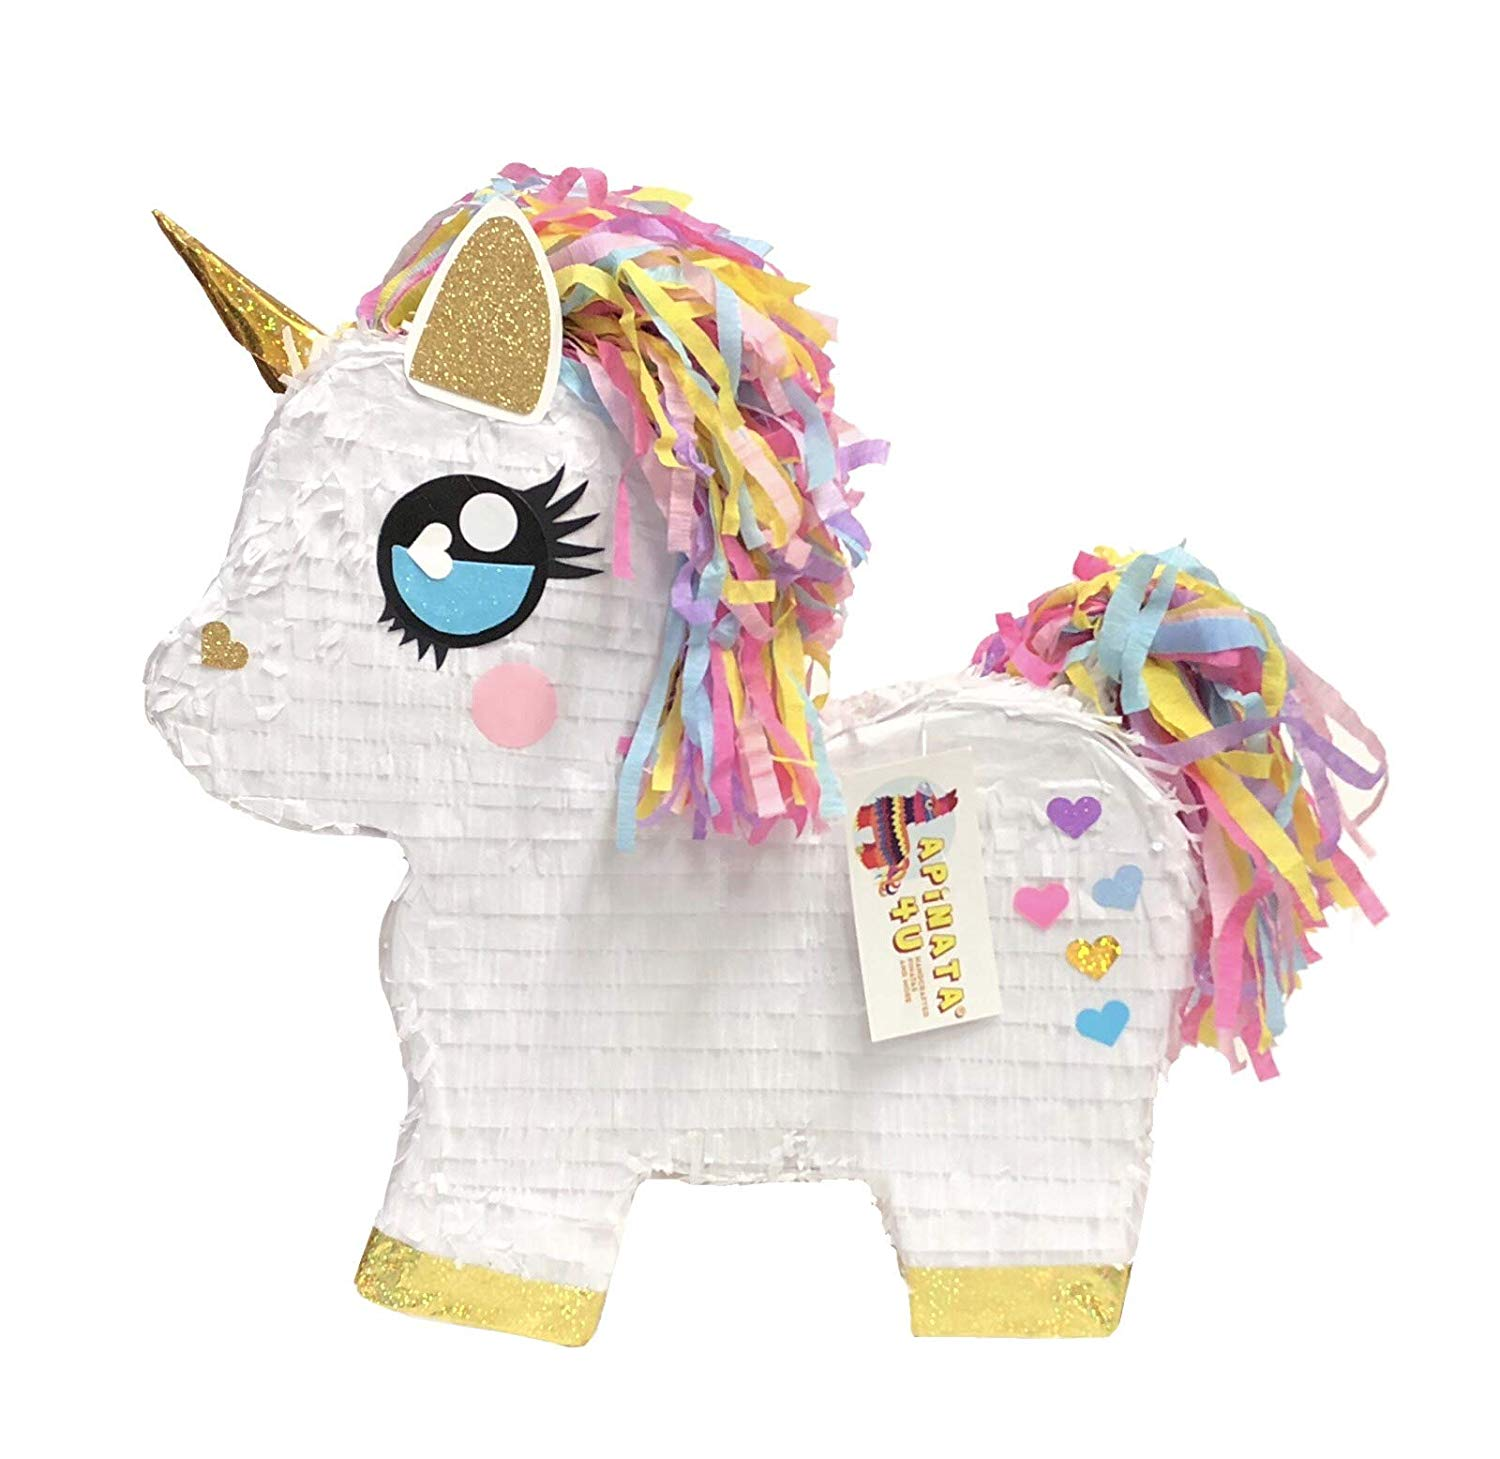 APINATA4U Cute Unicorn Pinata for a Magical Unicorn Theme Party